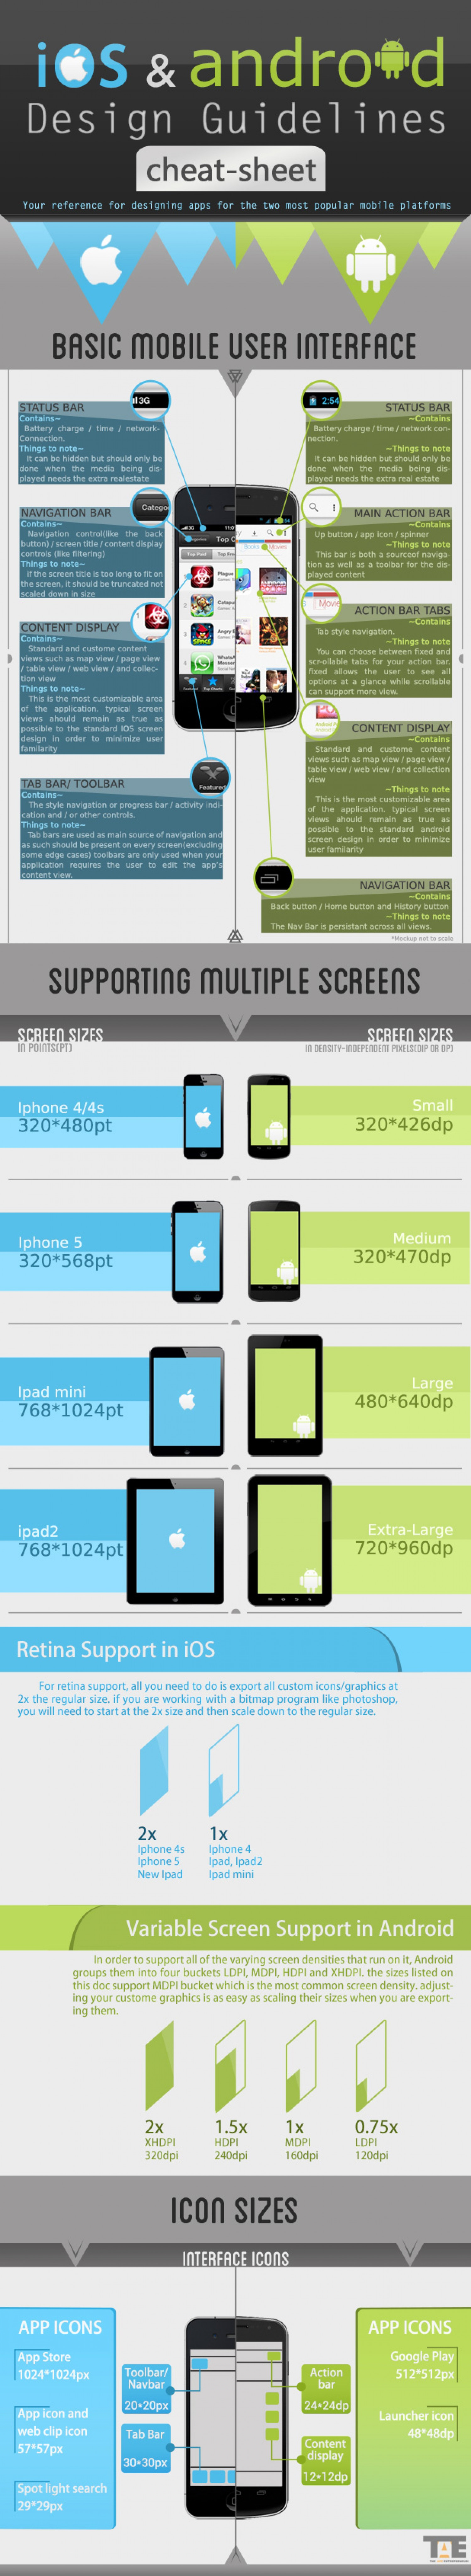 Ios And Android Design Guidelines Android Design Android Design Guidelines Design Guidelines